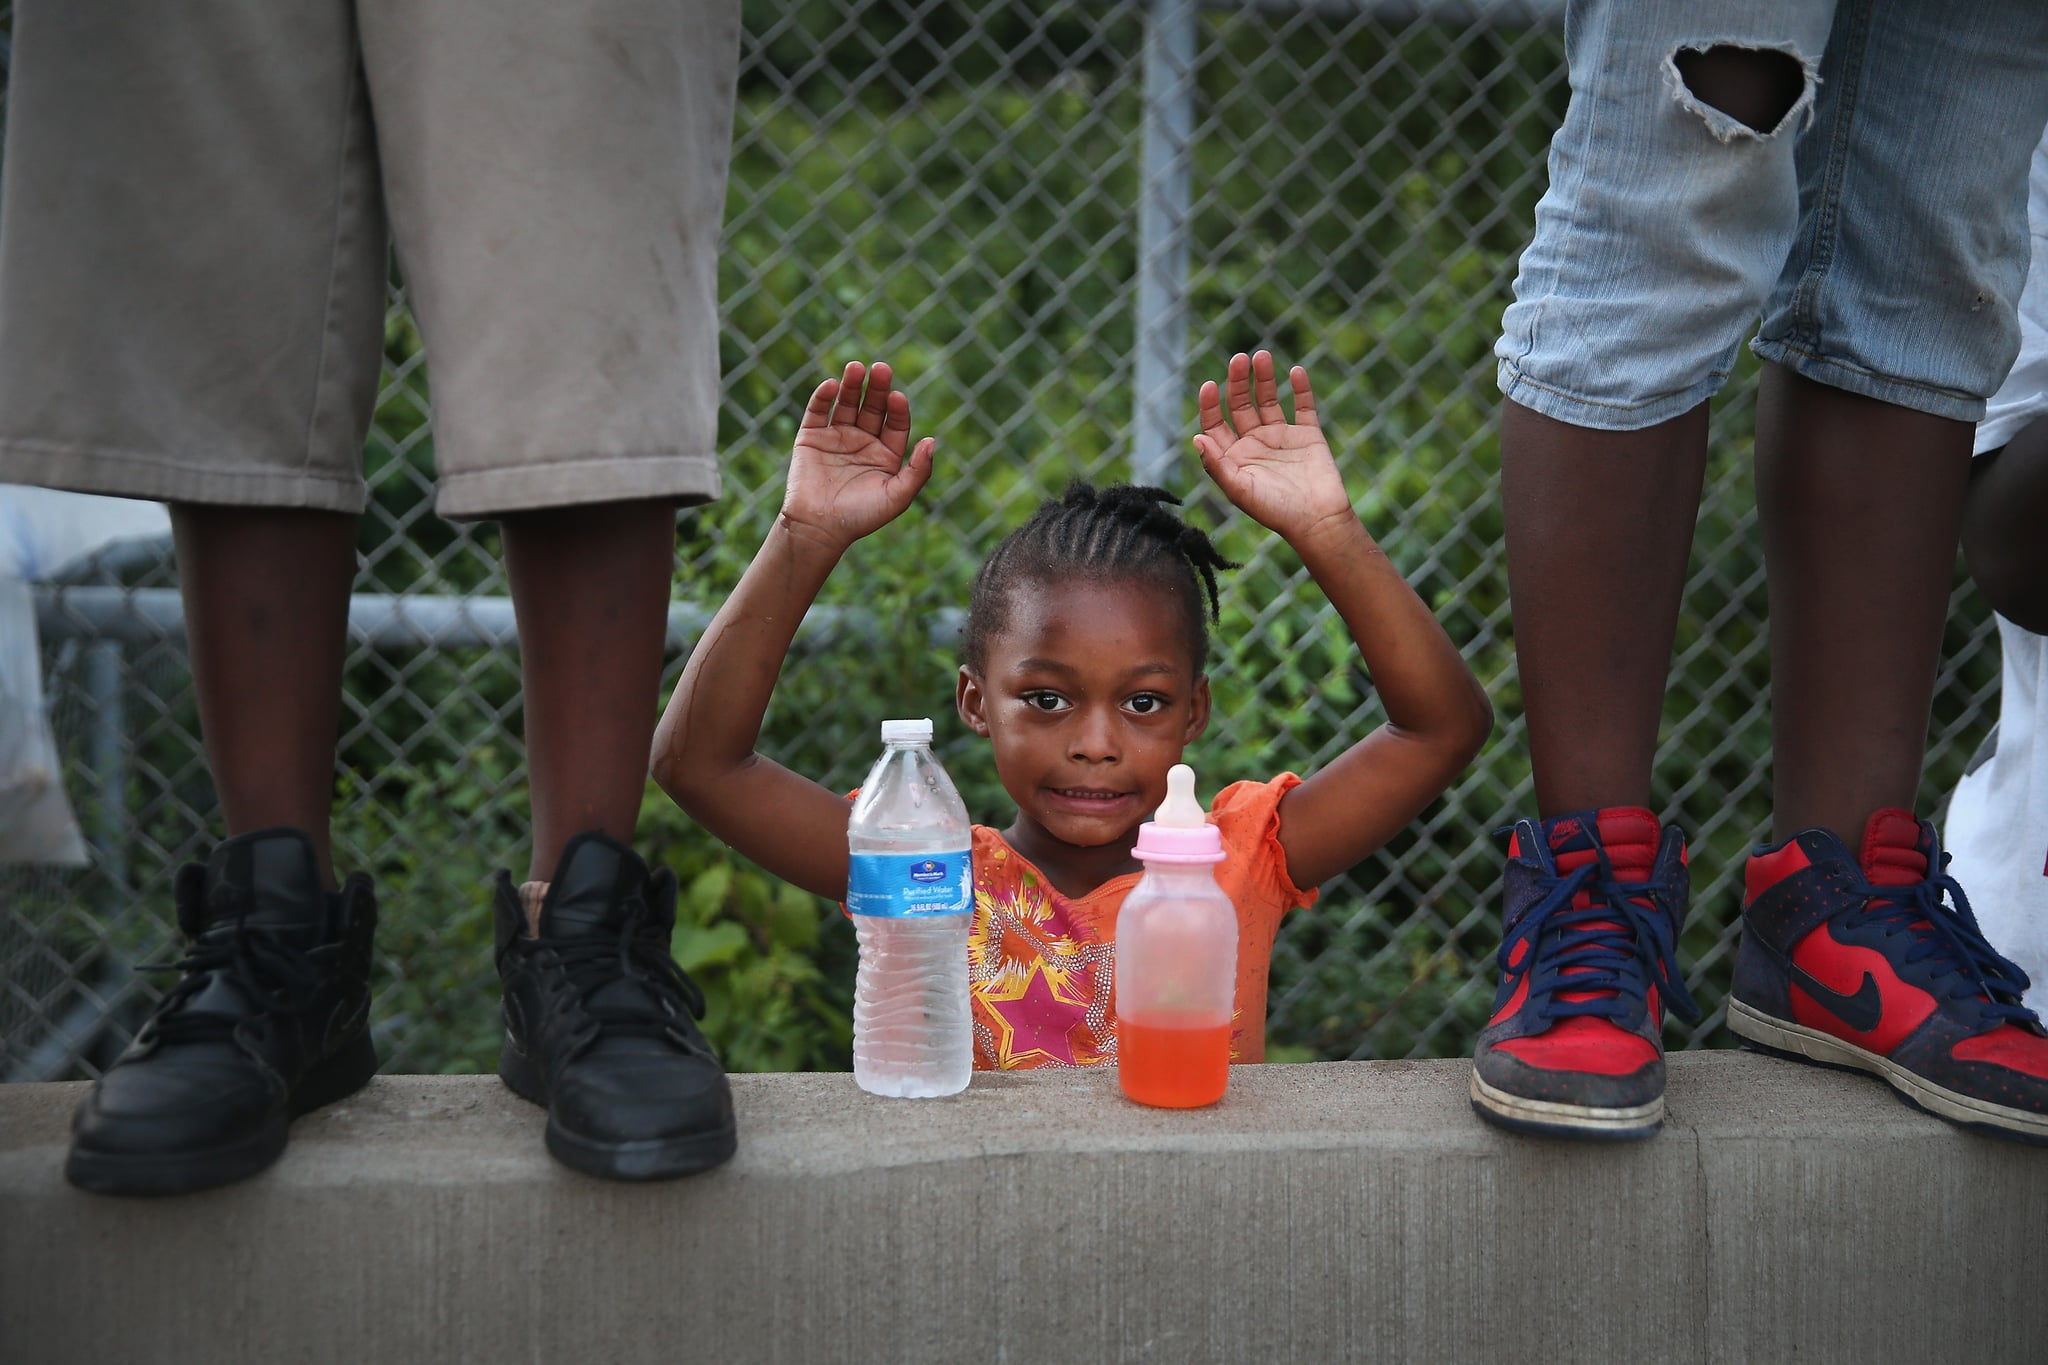 A child put her hands up in protest of the killing of Michael Brown.